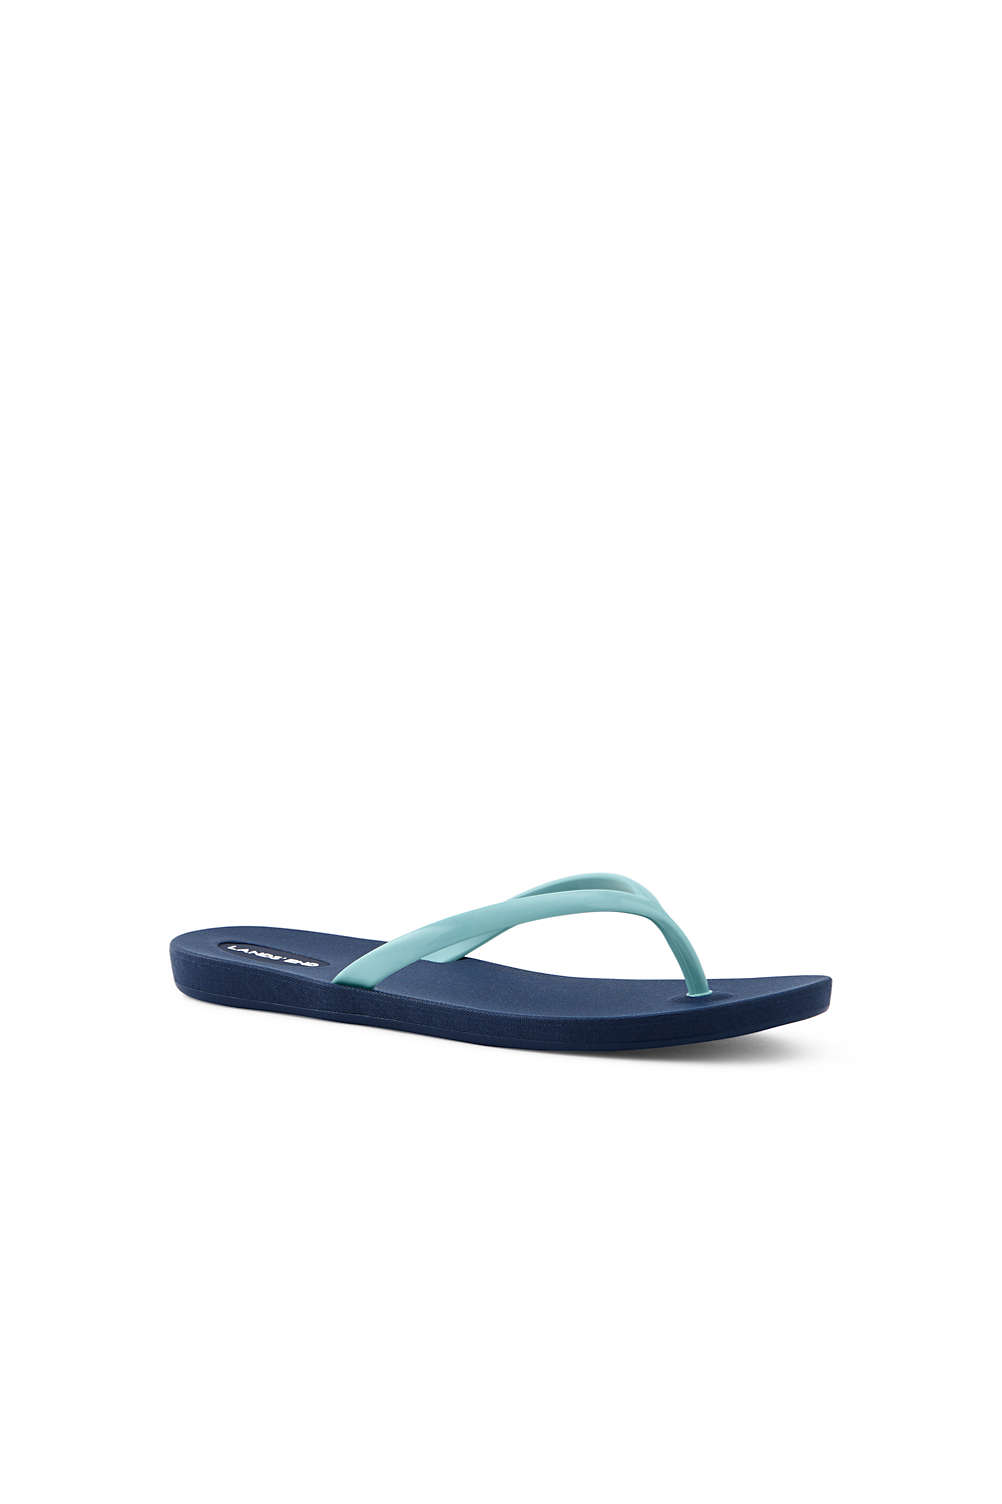 e130fd0f46a9 Women s Flip Flop Sandals from Lands  End